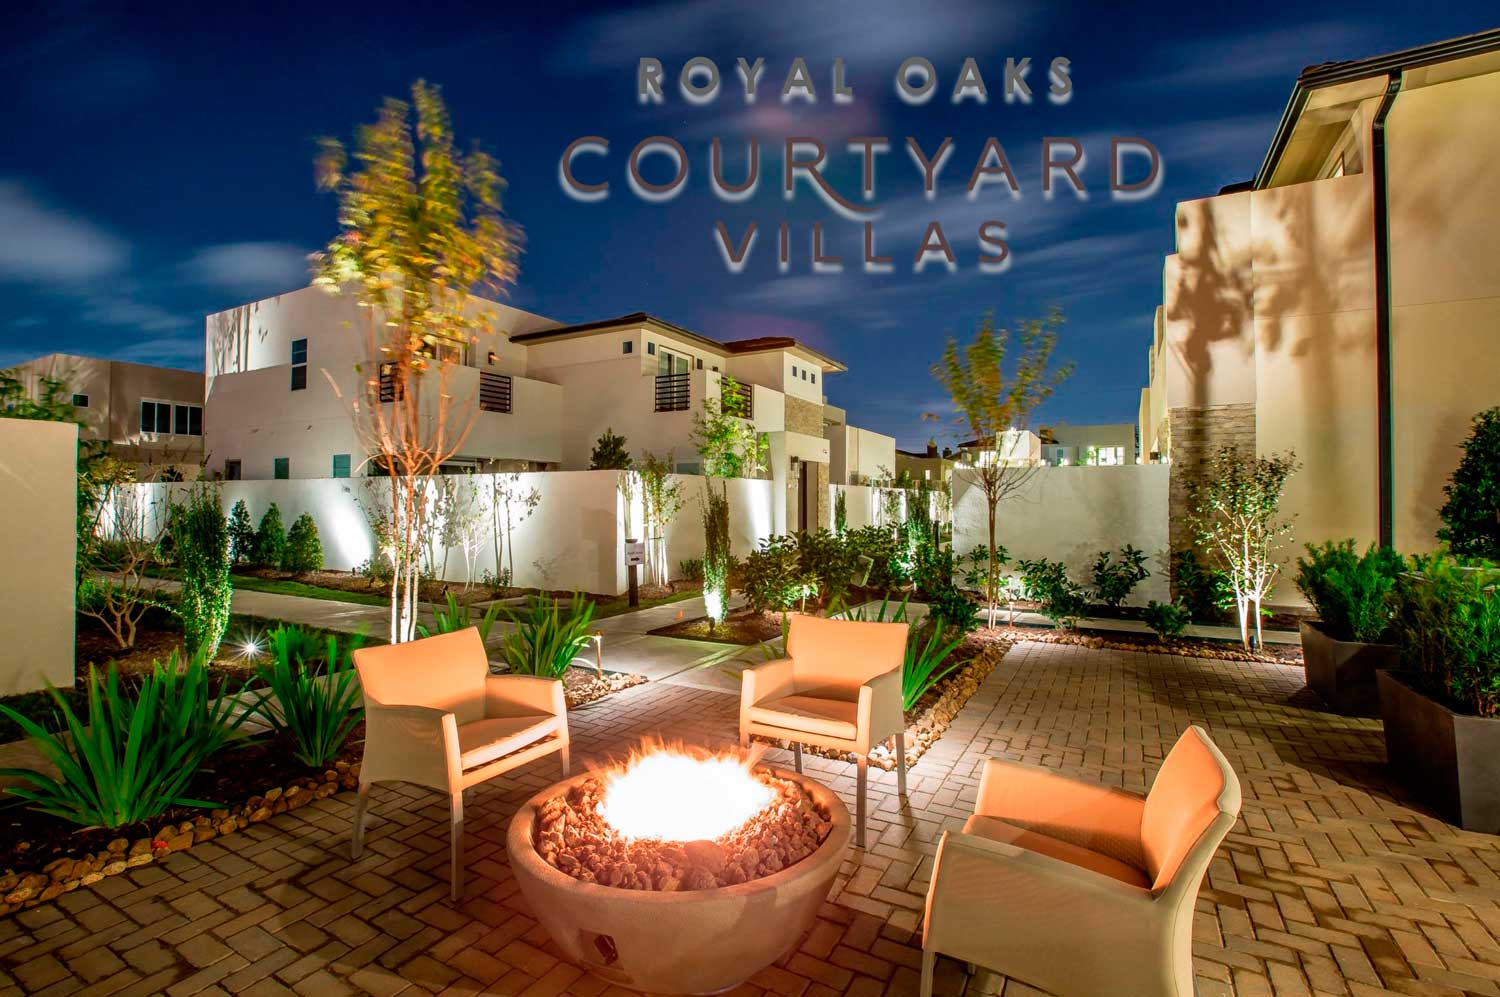 Courtyard Villas